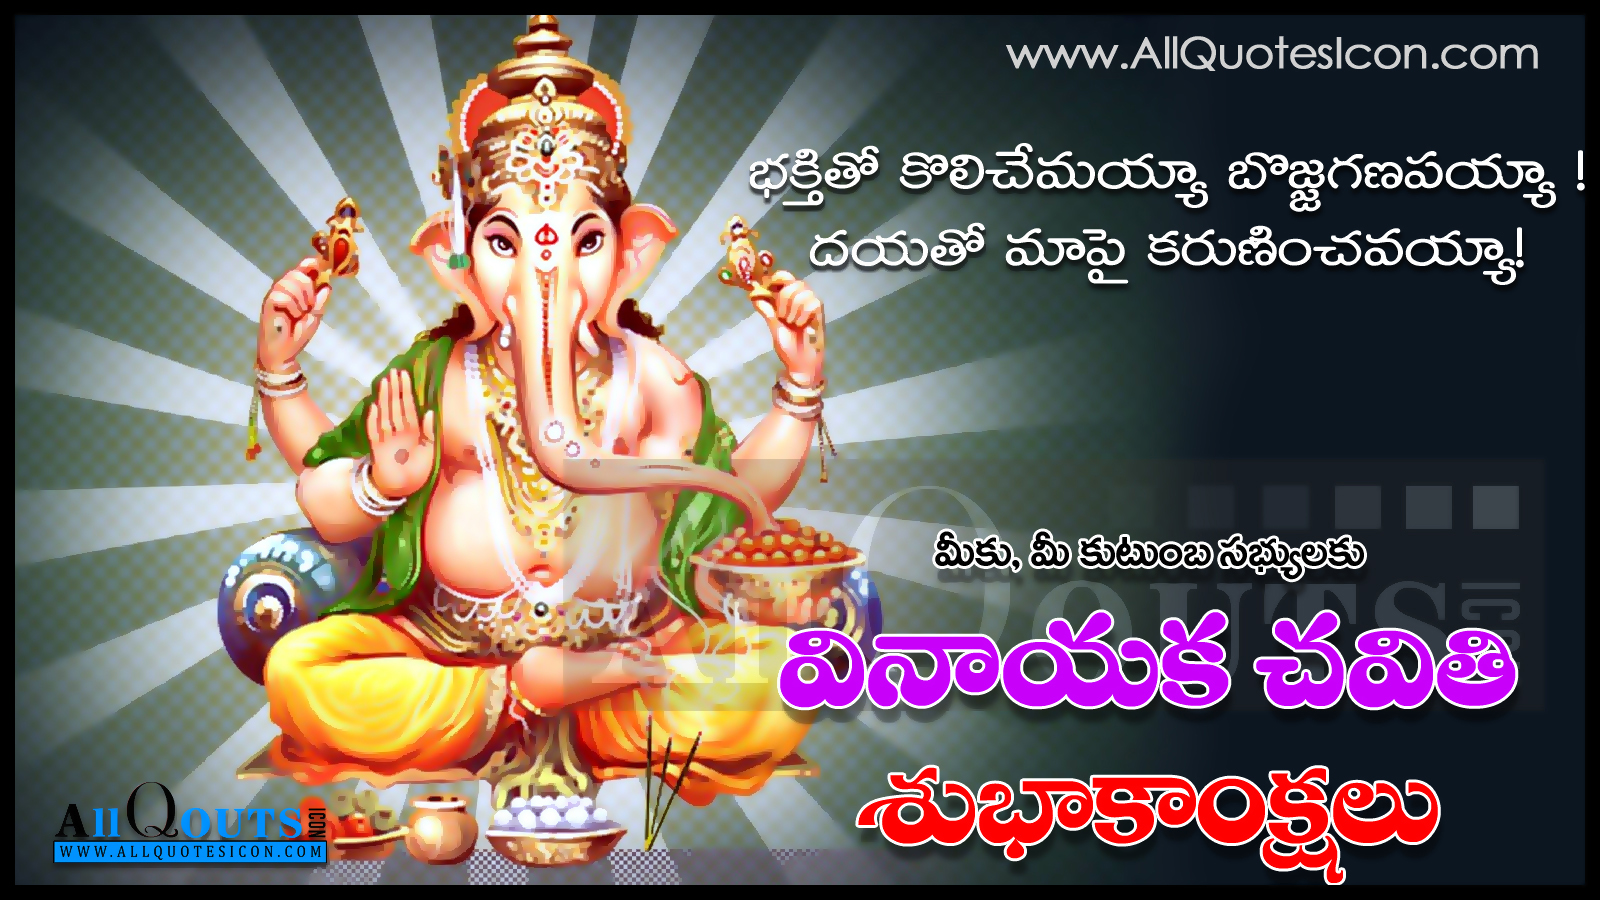 Best greetings and pictures about happy vinayaka chavithi images here is vinayaka chavithi 2015 wallpapers in telugubest vinayaka chavithi information in telugu m4hsunfo